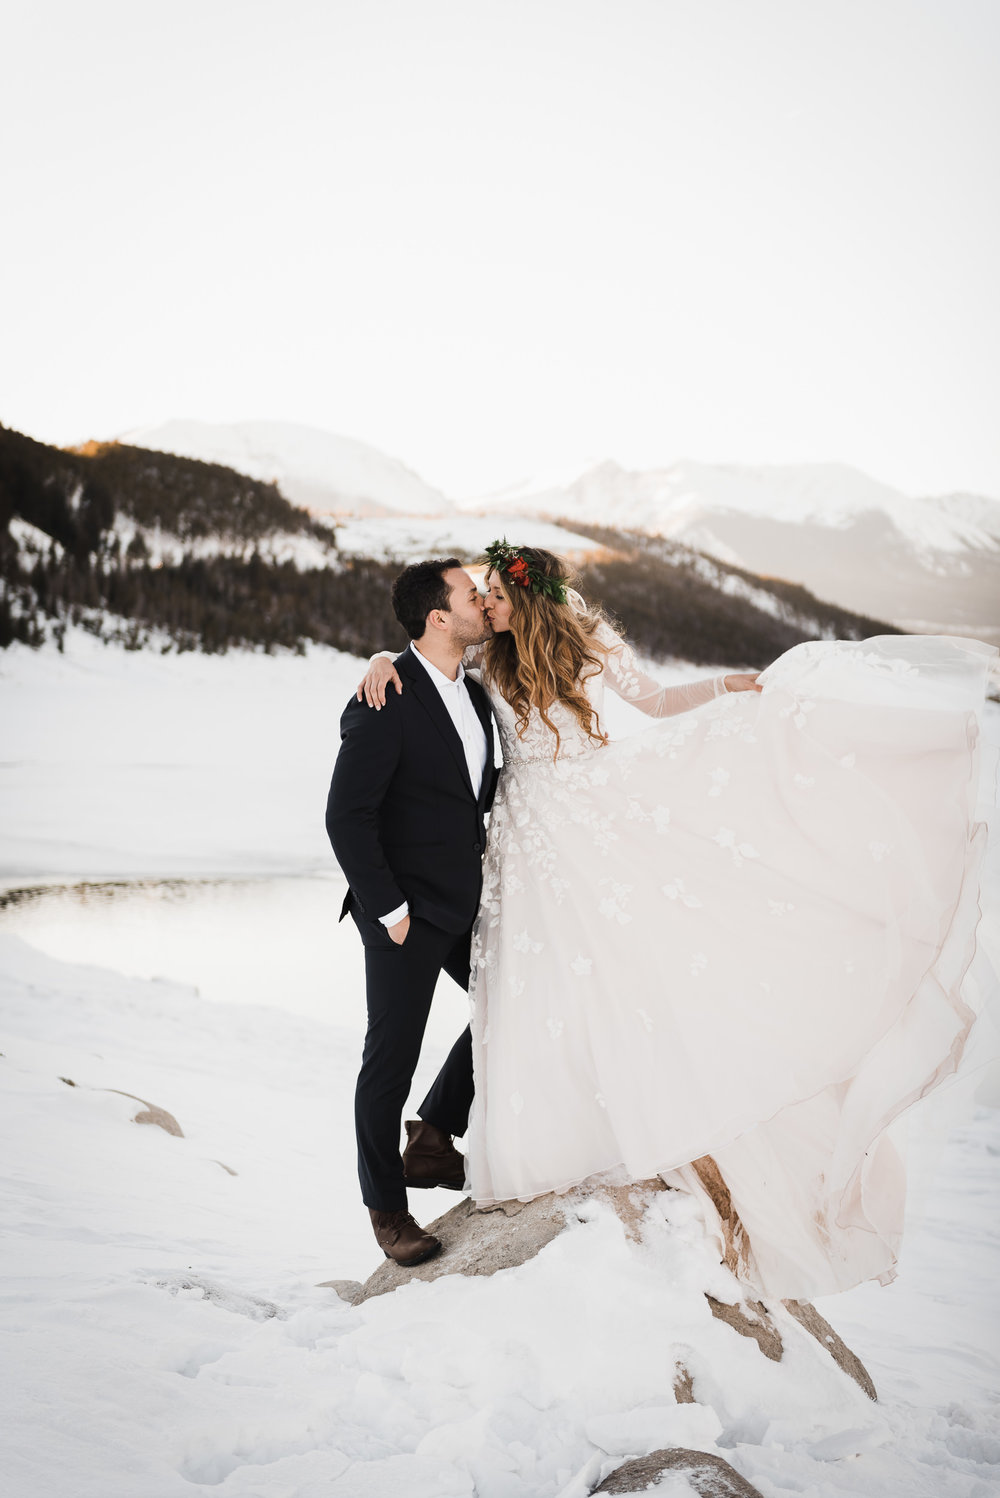 Jana & Mark | Elopement in Colorado